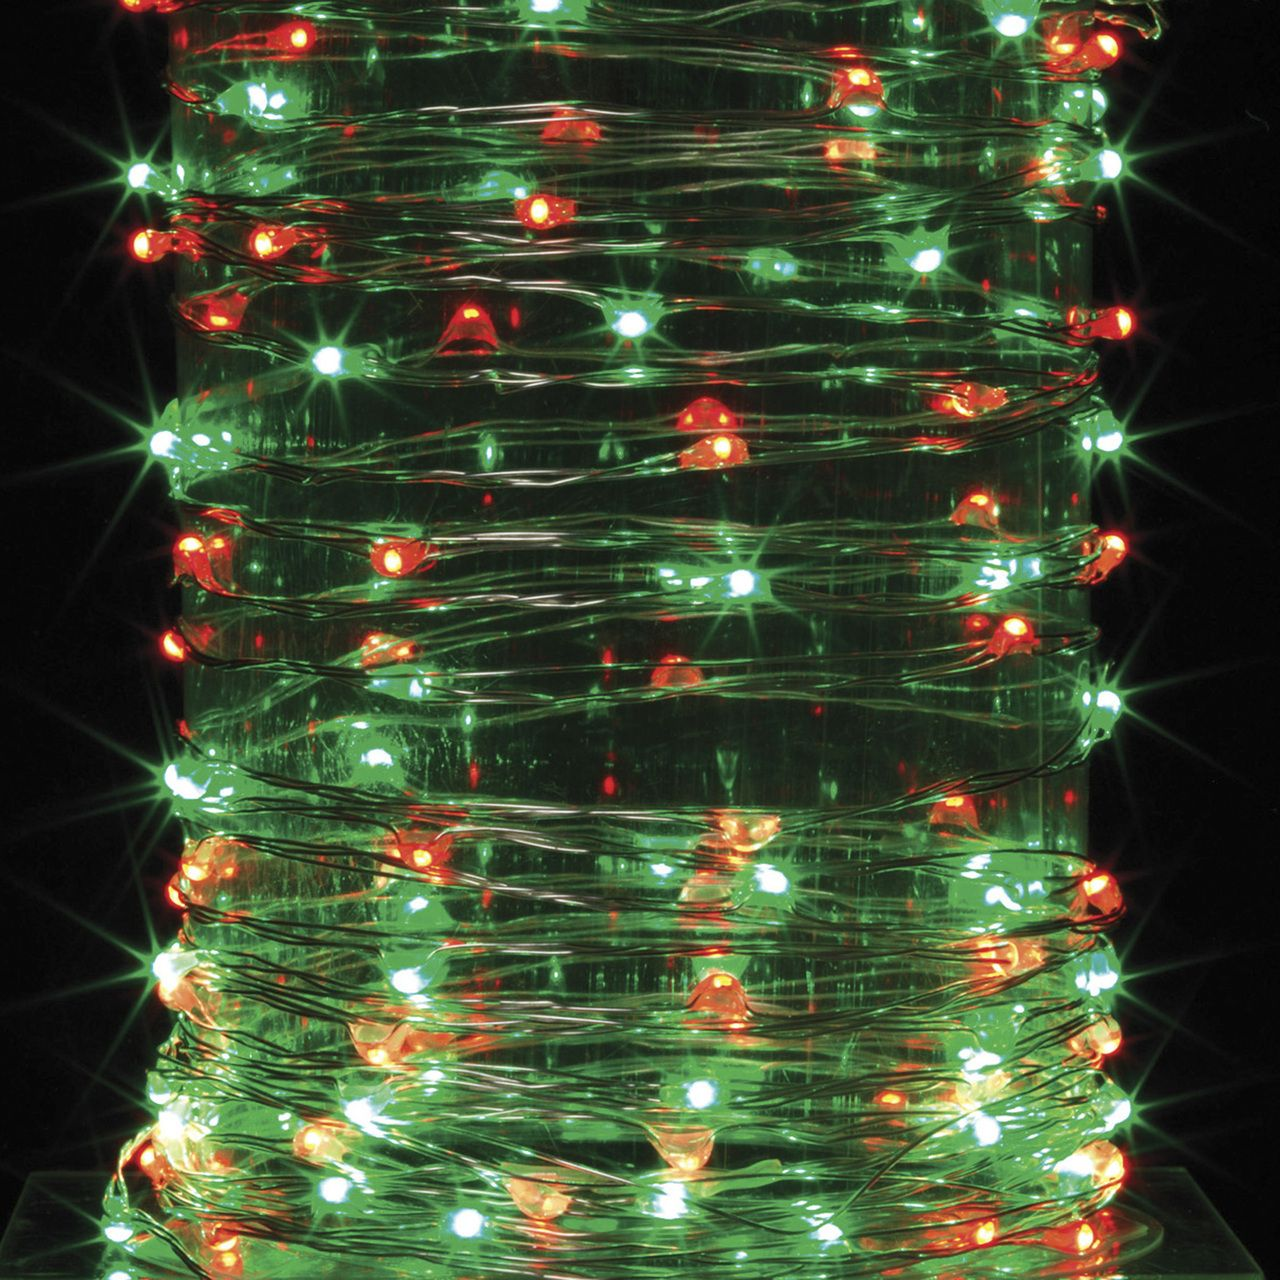 The Jolly Christmas Shop   10ft Red And Green Outdoor Battery Operated  Lights, $15.99 (